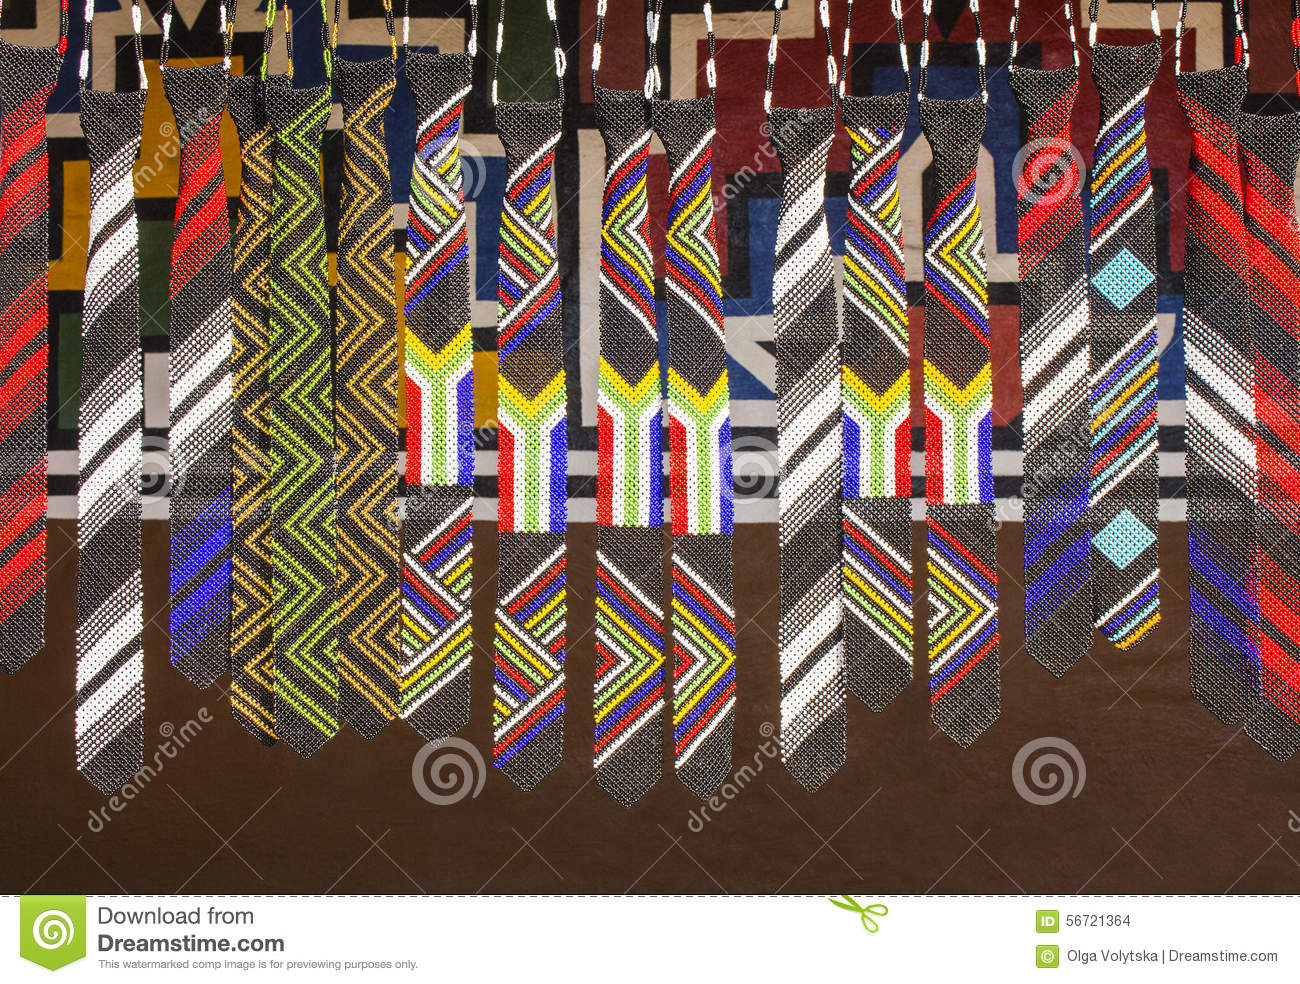 African ethnic handmade beads colorful ties. Flag of South Africa.